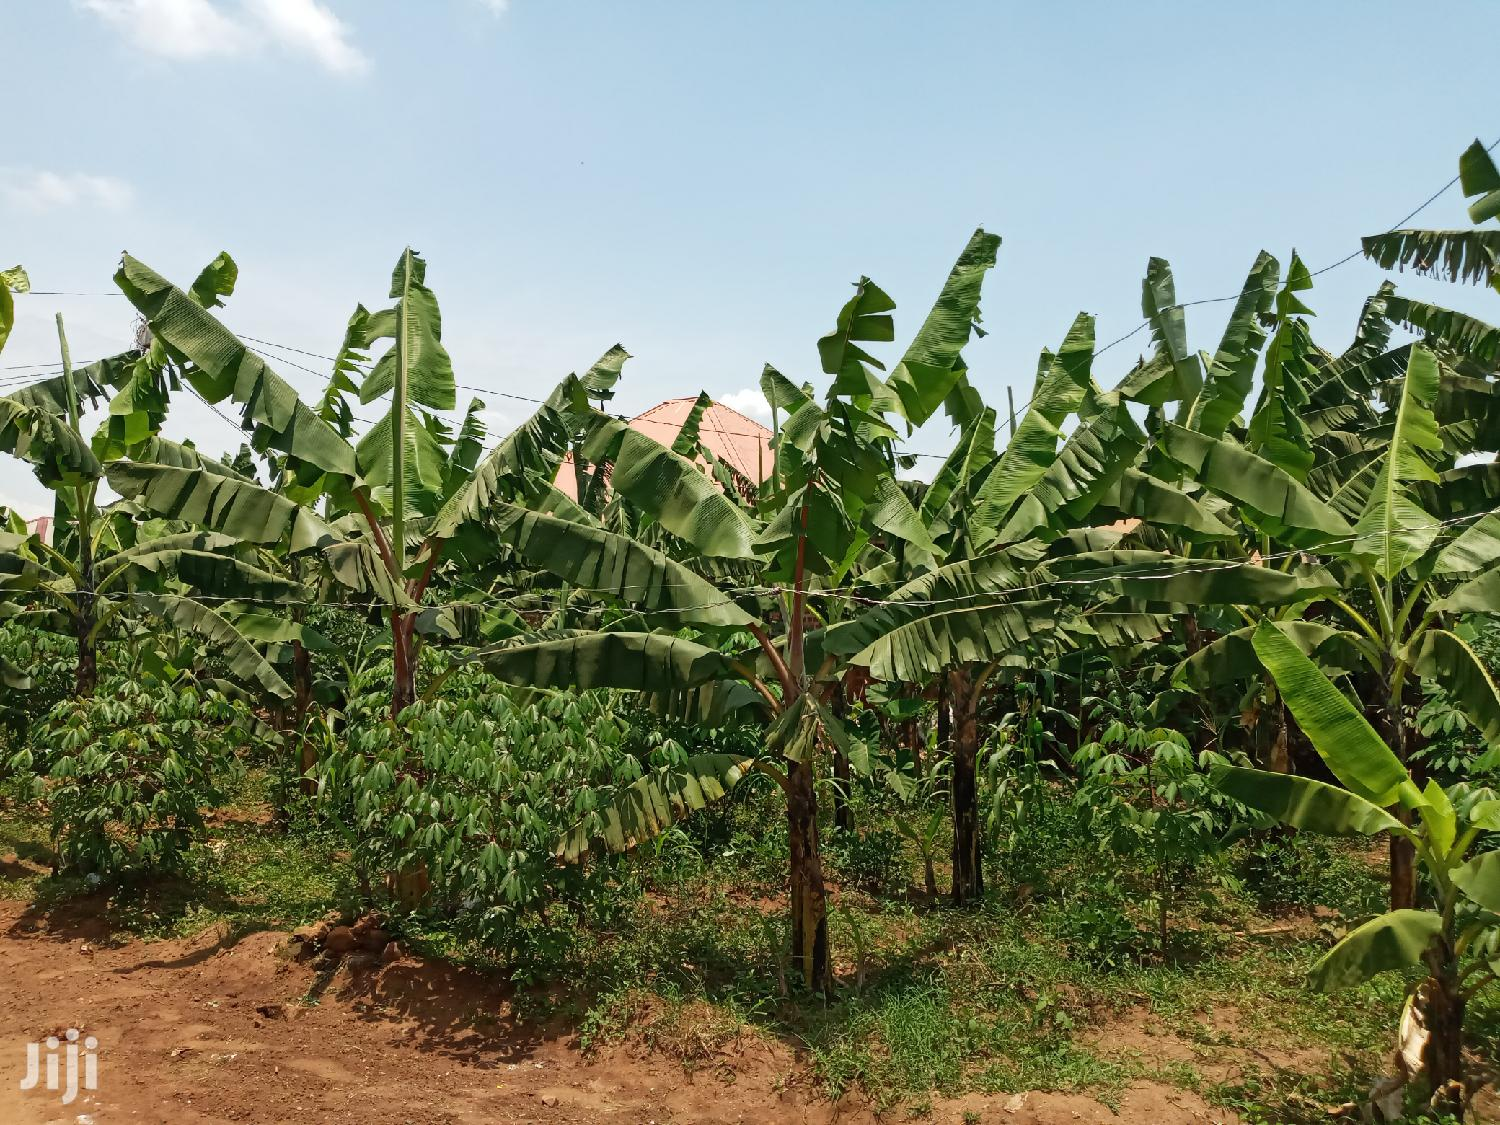 Very Hot Big Plot on Quicksale With Bananas and Cassava